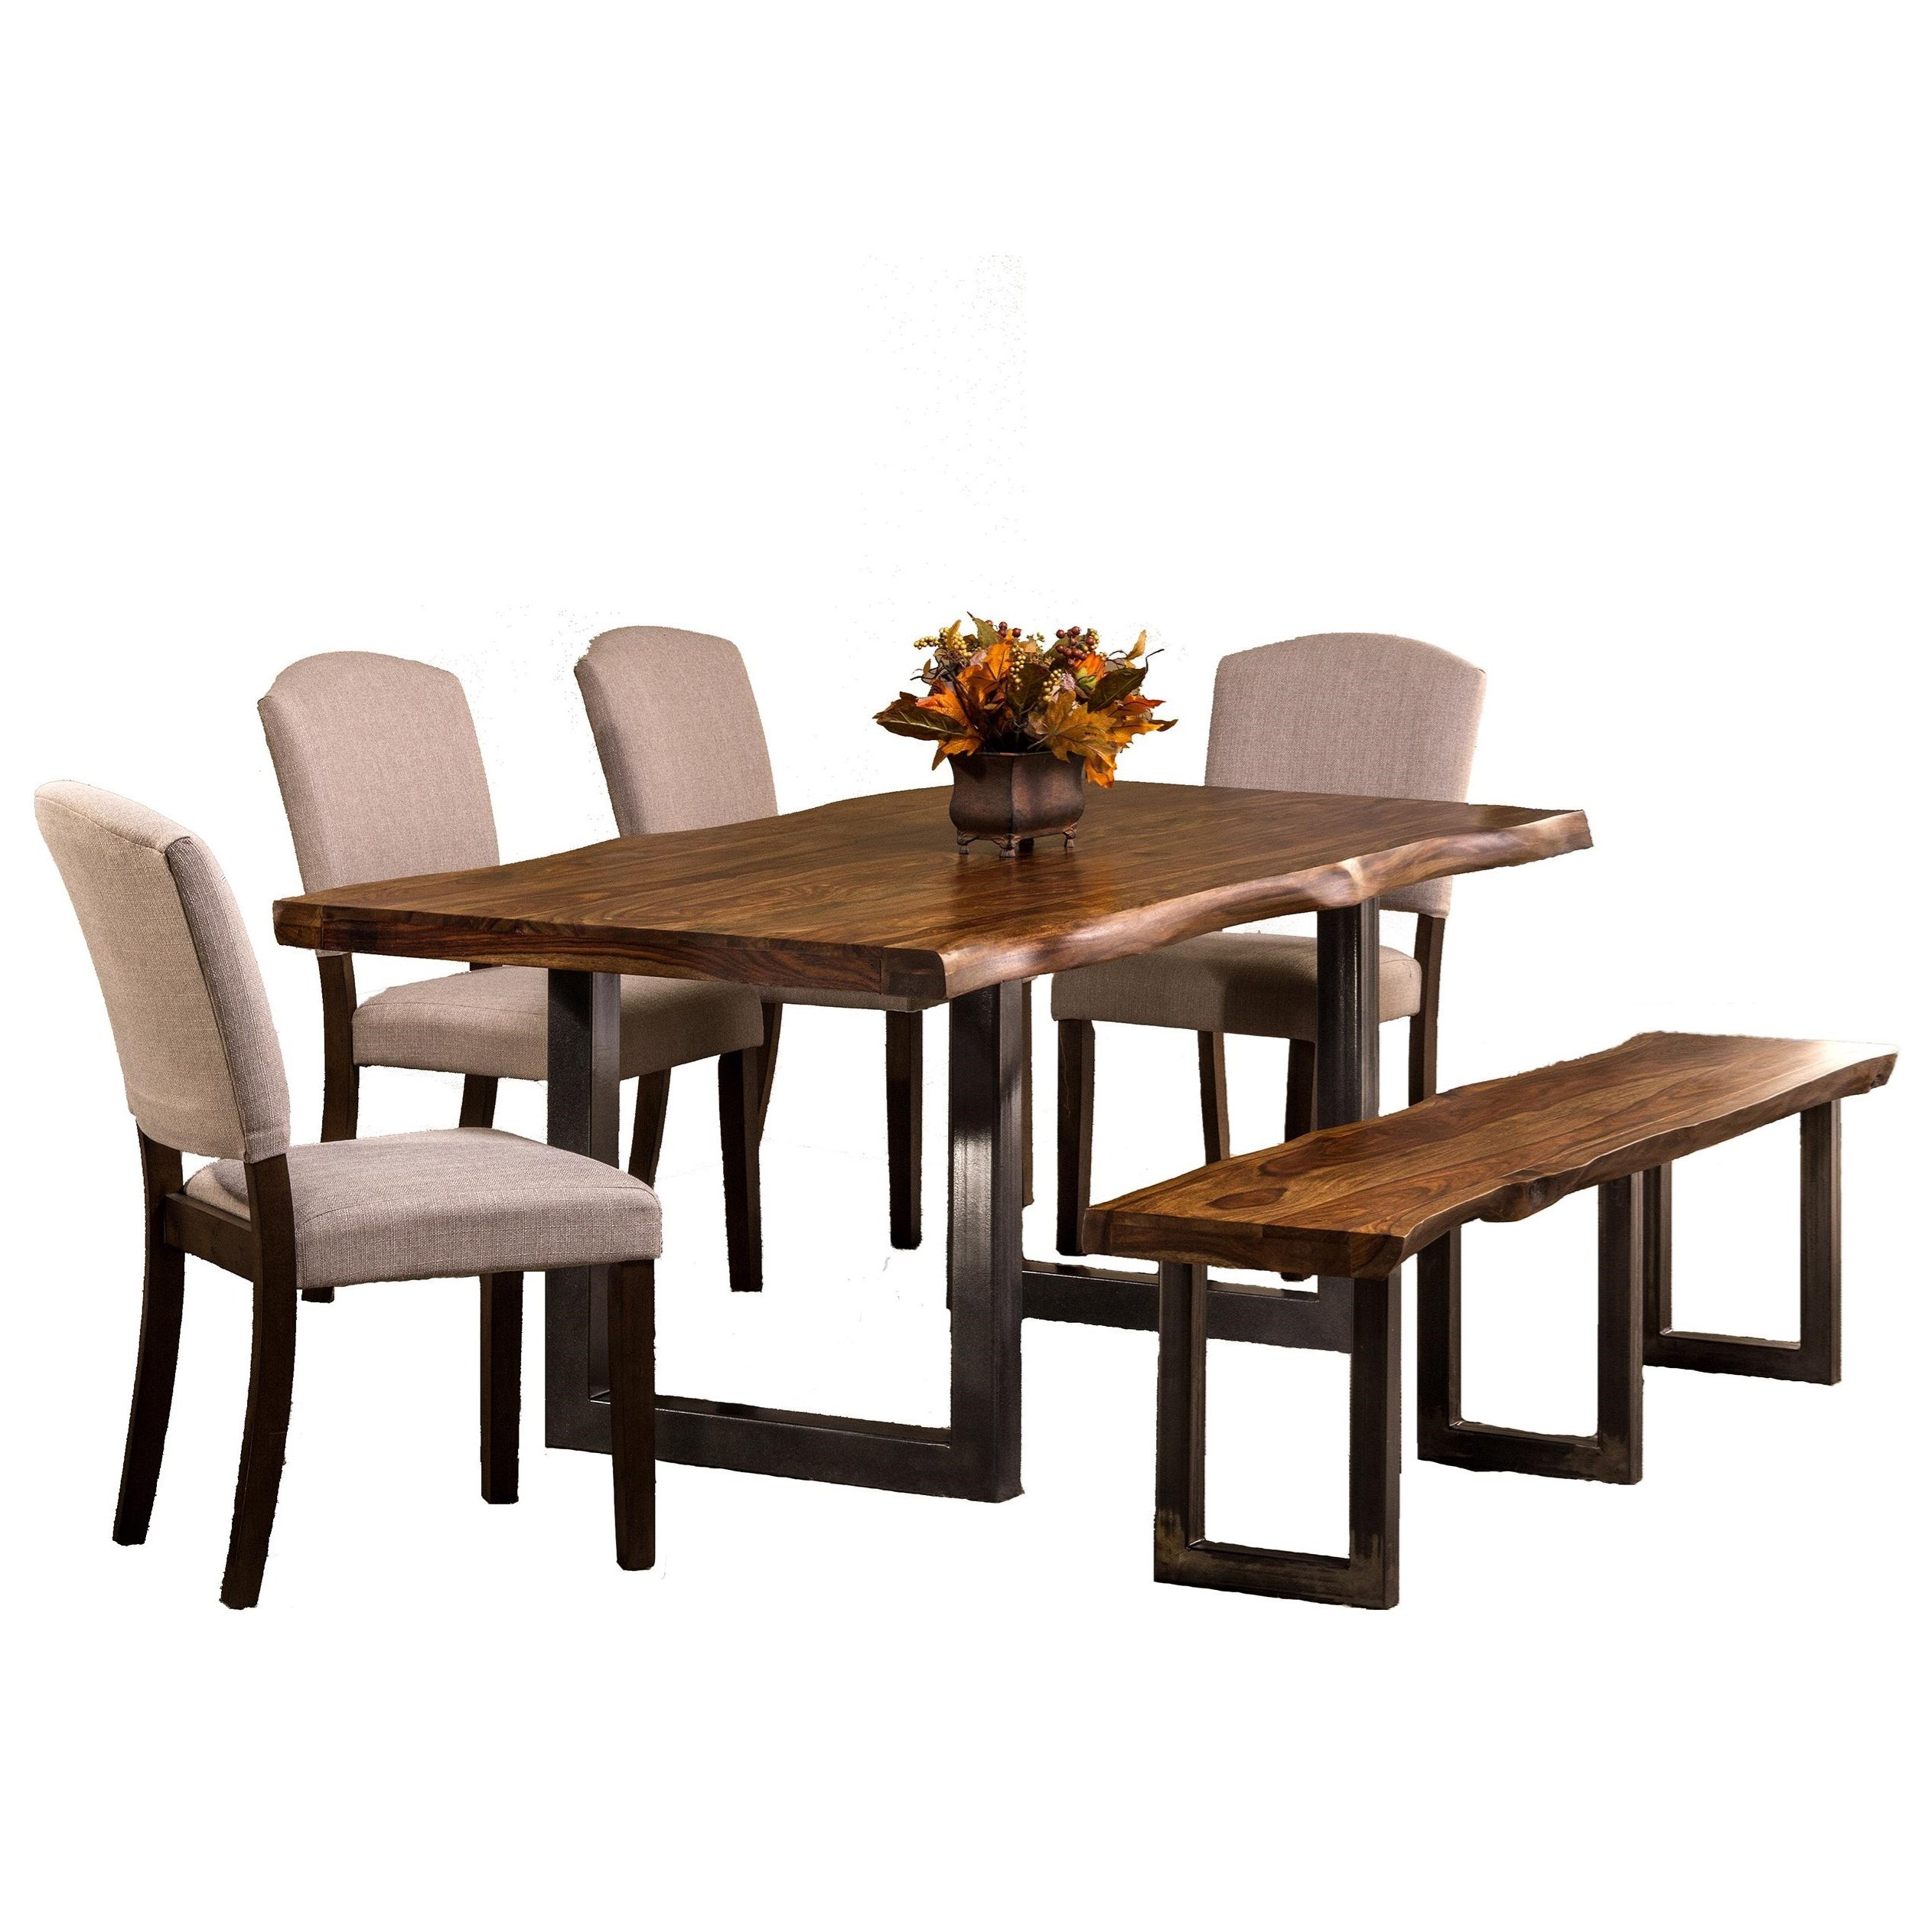 Hillsdale emerson 5674dtbhc 6 piece rectangle dining set with dining bench and chairs dunk - Rectangular dining table for 6 ...